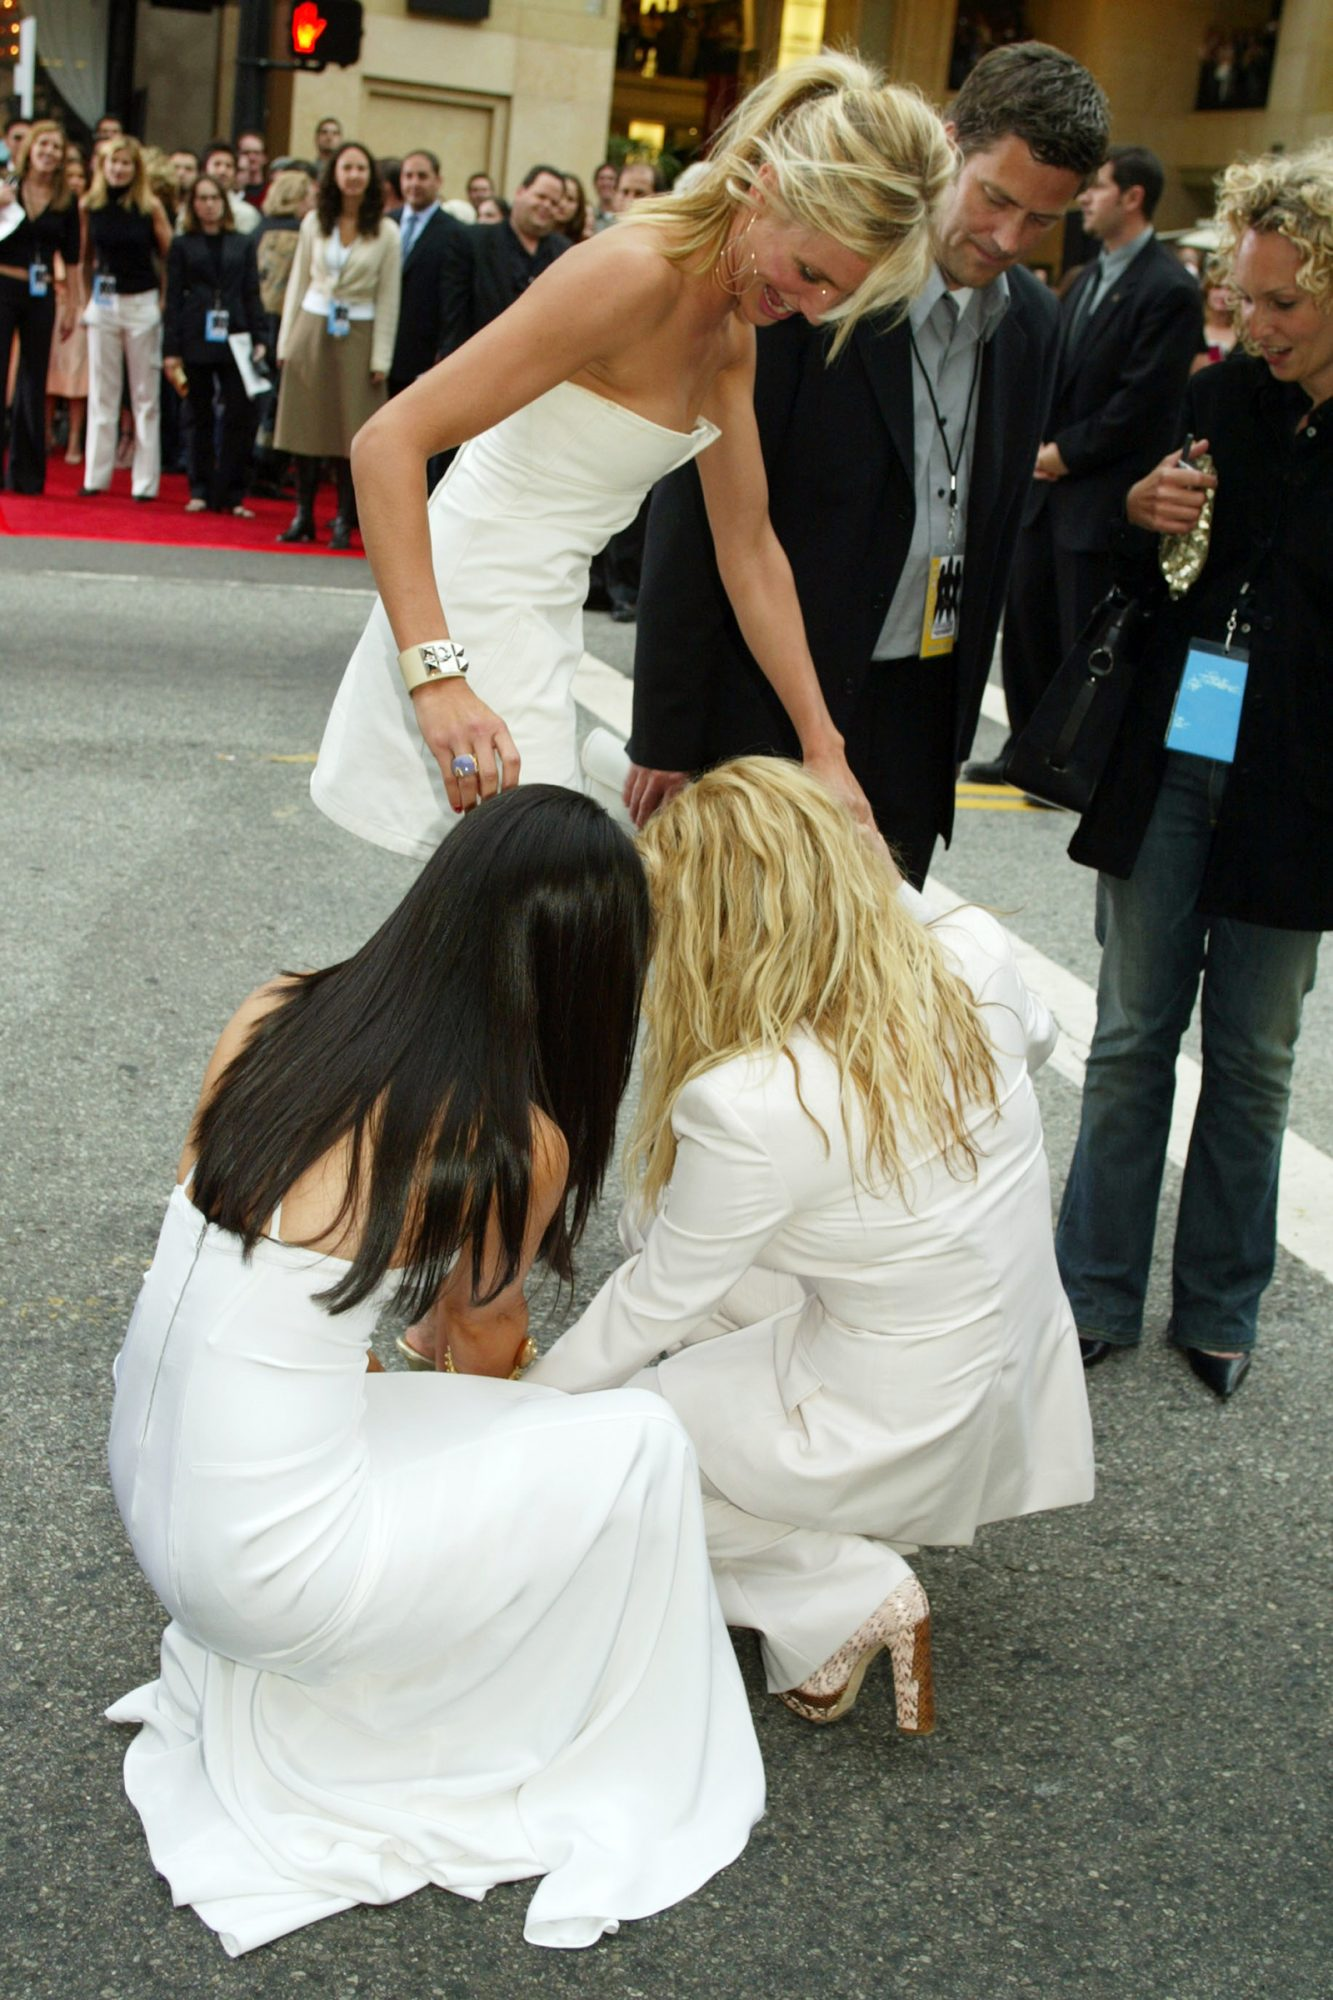 Cameron Diaz, Drew Barrymore, and Lucy Liu Charlie's Angels